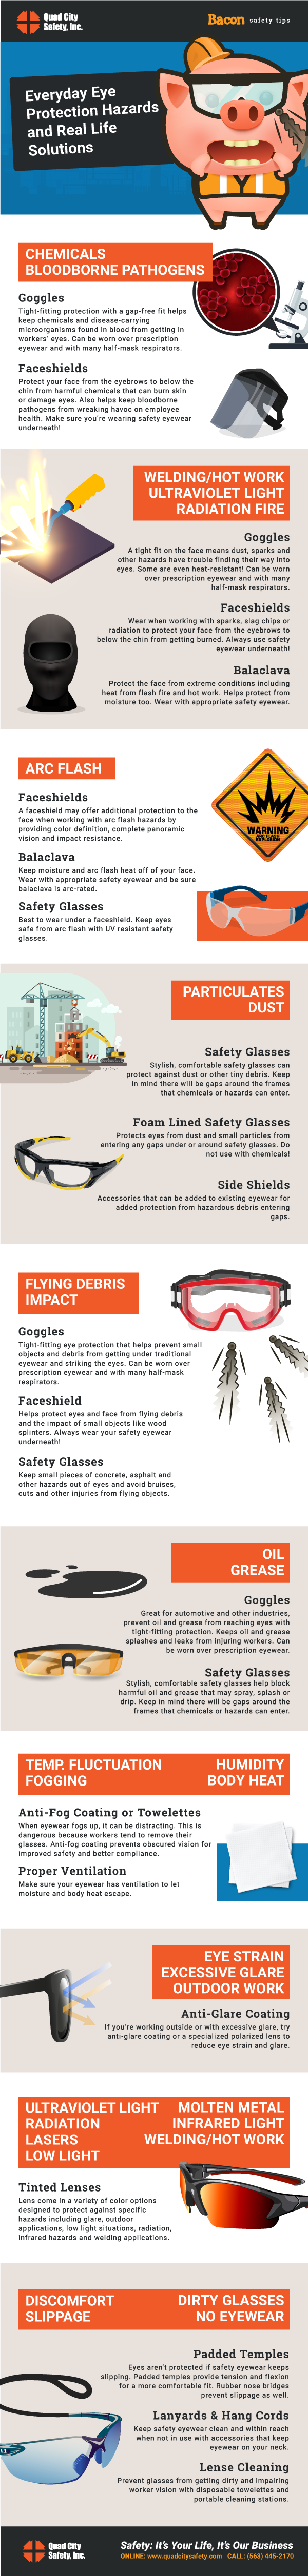 Bacon's-Safety-Tips-Eye-Protection-Solutions2